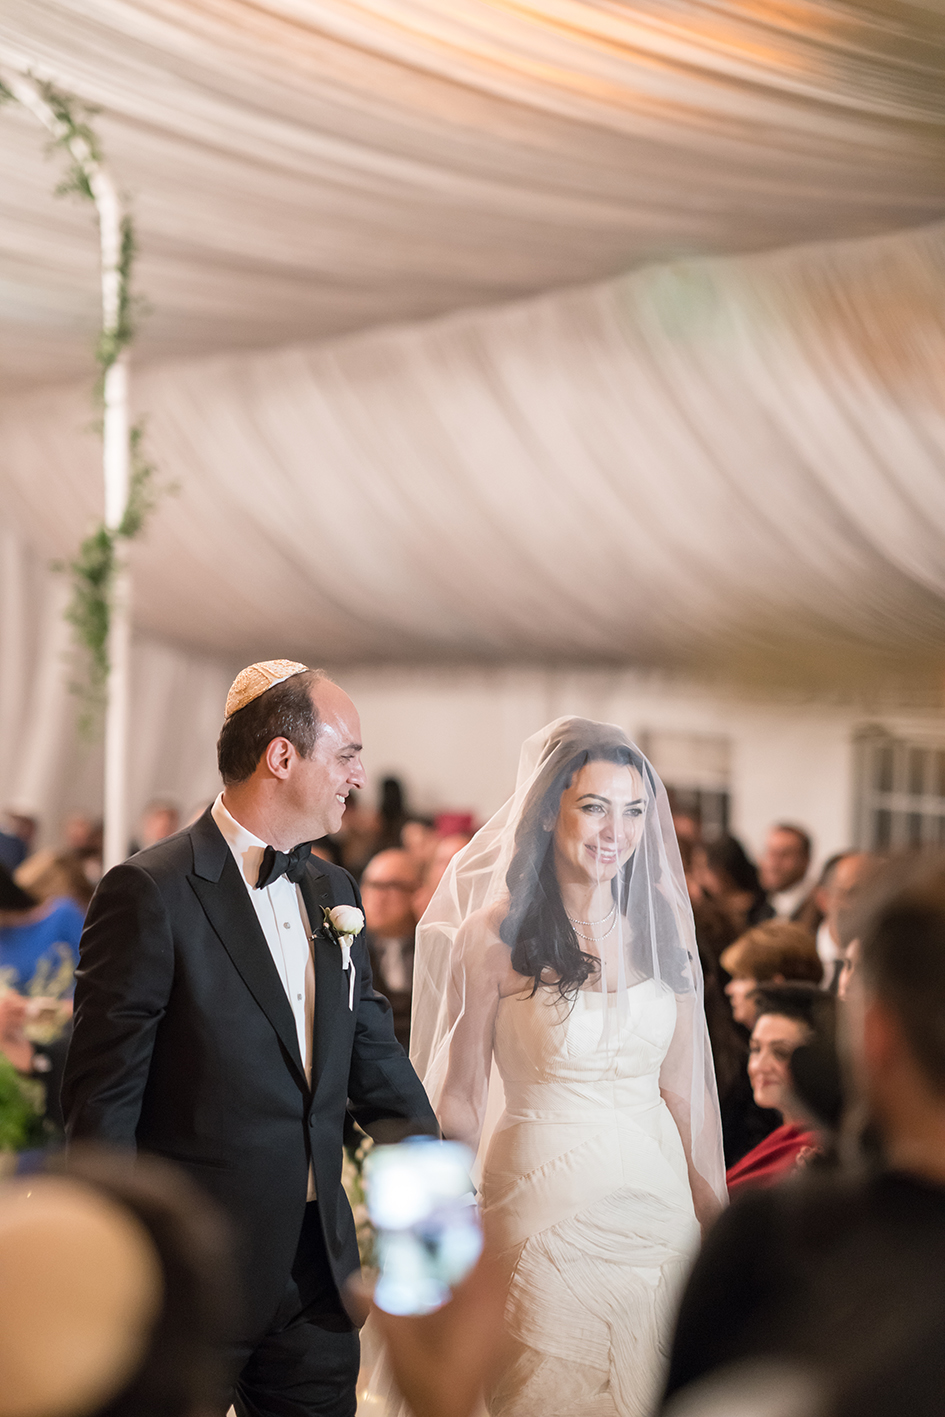 Michael and Neda walk down the aisle at their wedding at Four Seasons Westlake Village